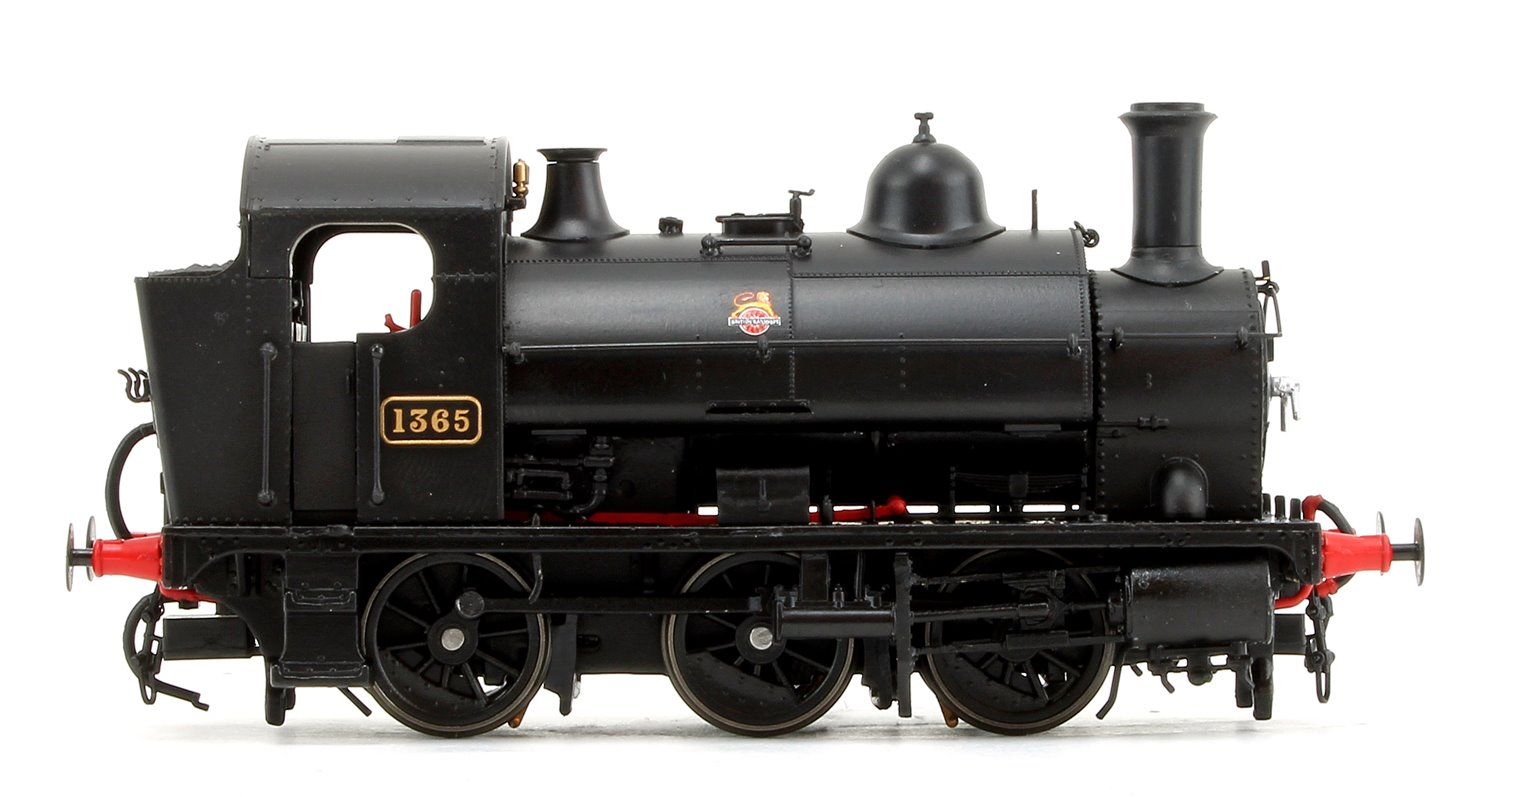 GWR 1361 Class 0-6-0 Tank Locomotive No.1365 in BR Black Early Lion & Wheel Insignia